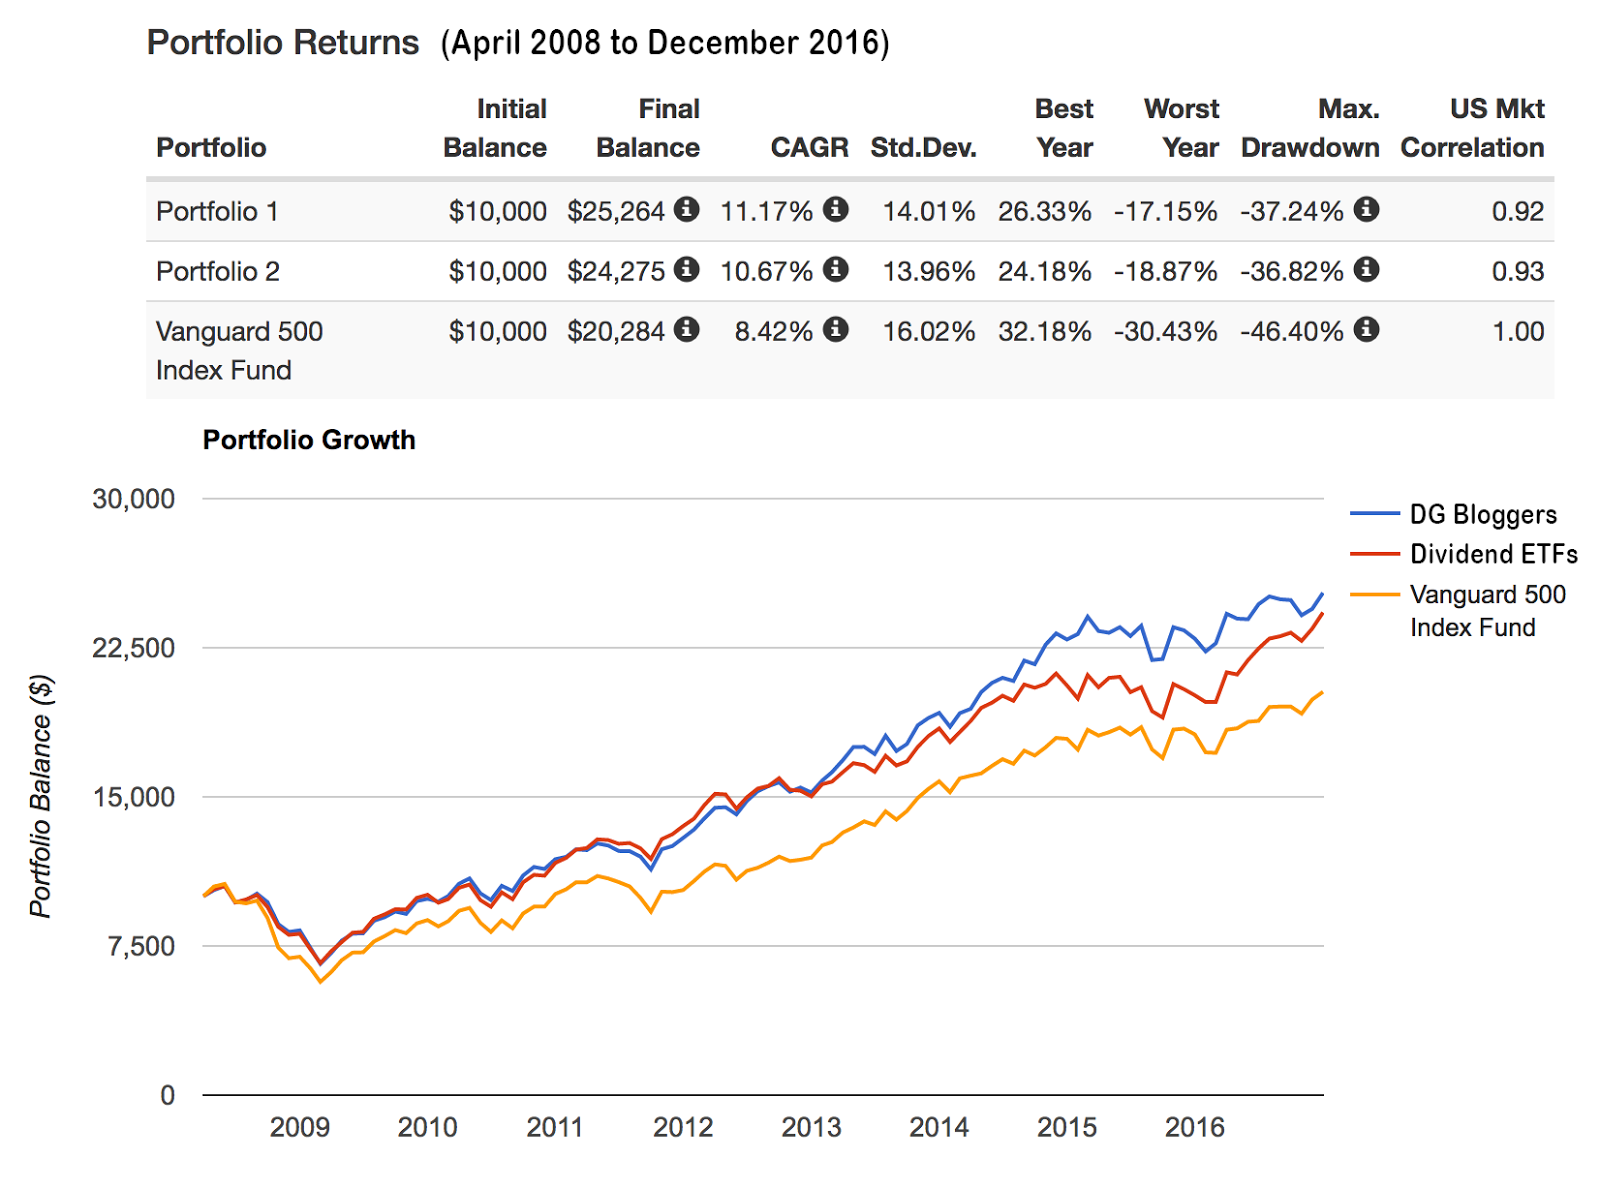 Top Holdings Of Dividend Growth Bloggers, 2017 Edition   Seeking Alpha